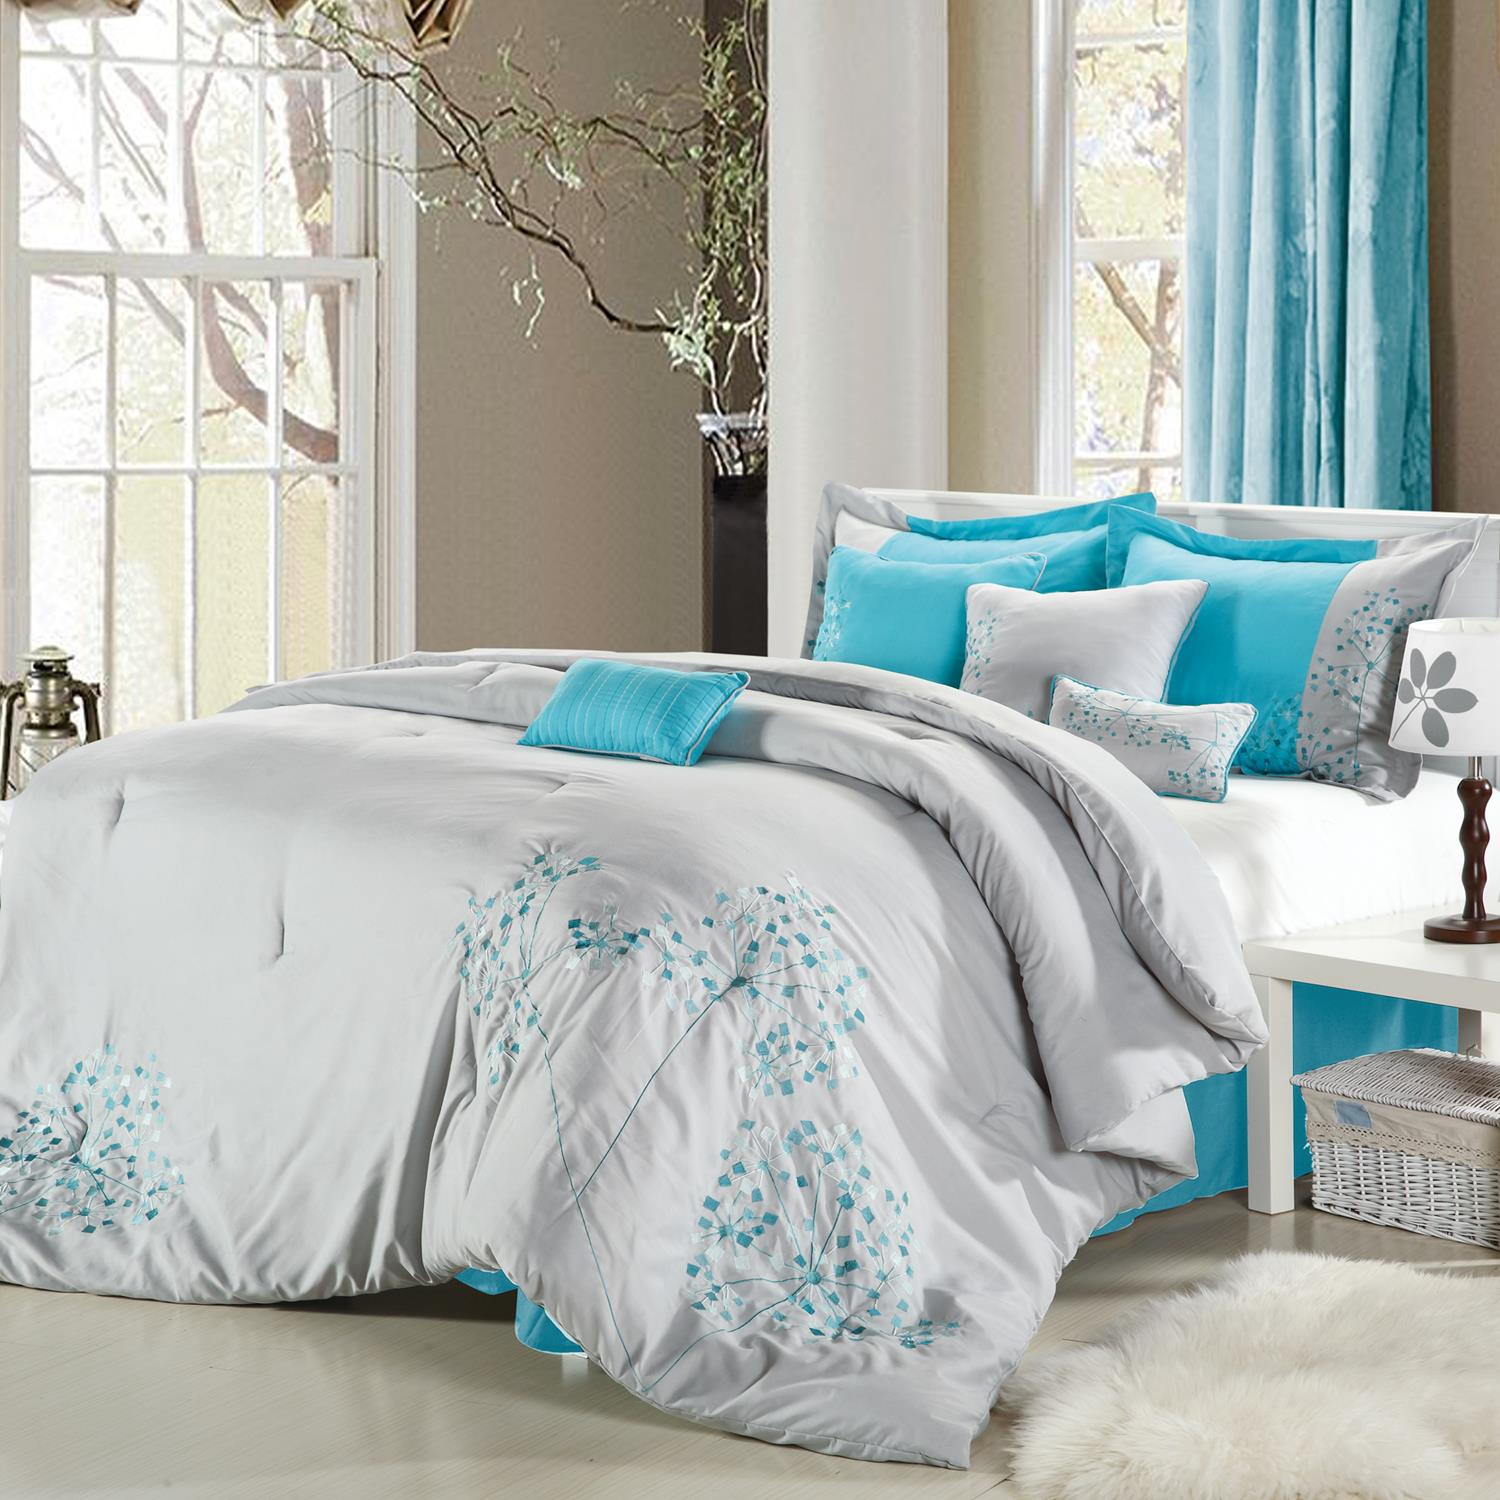 Bedroom Blue Grey Raised Bedroom Bed Plans Small Bedroom Black And White Art On Bedroom Wall: Pink Floral Gray, Turquoise & Silver 8 Piece King